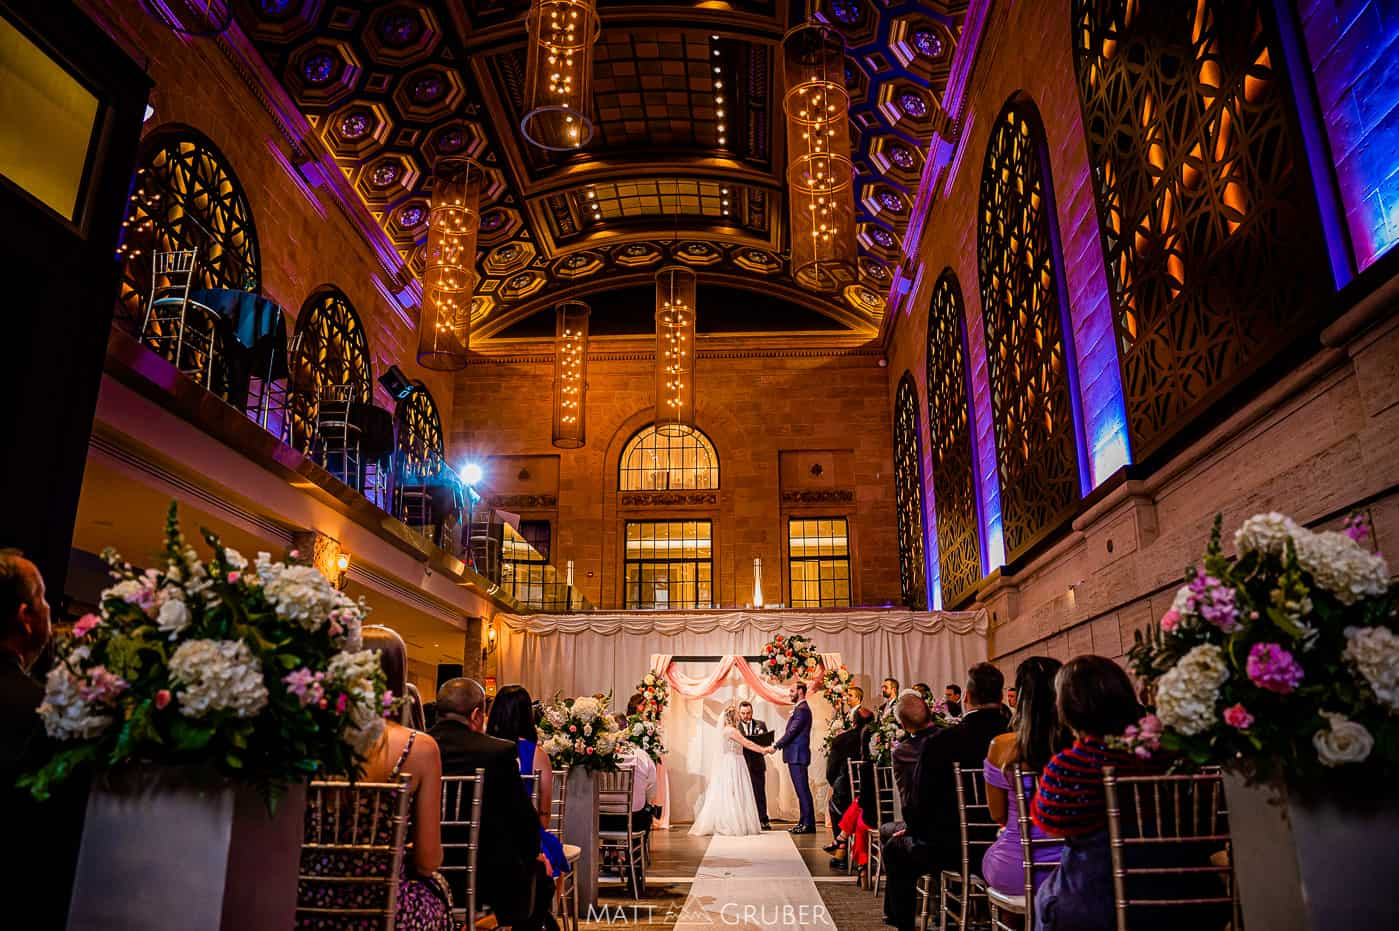 Wedding ceremony at Union Trust Ballroom by Finley Catering